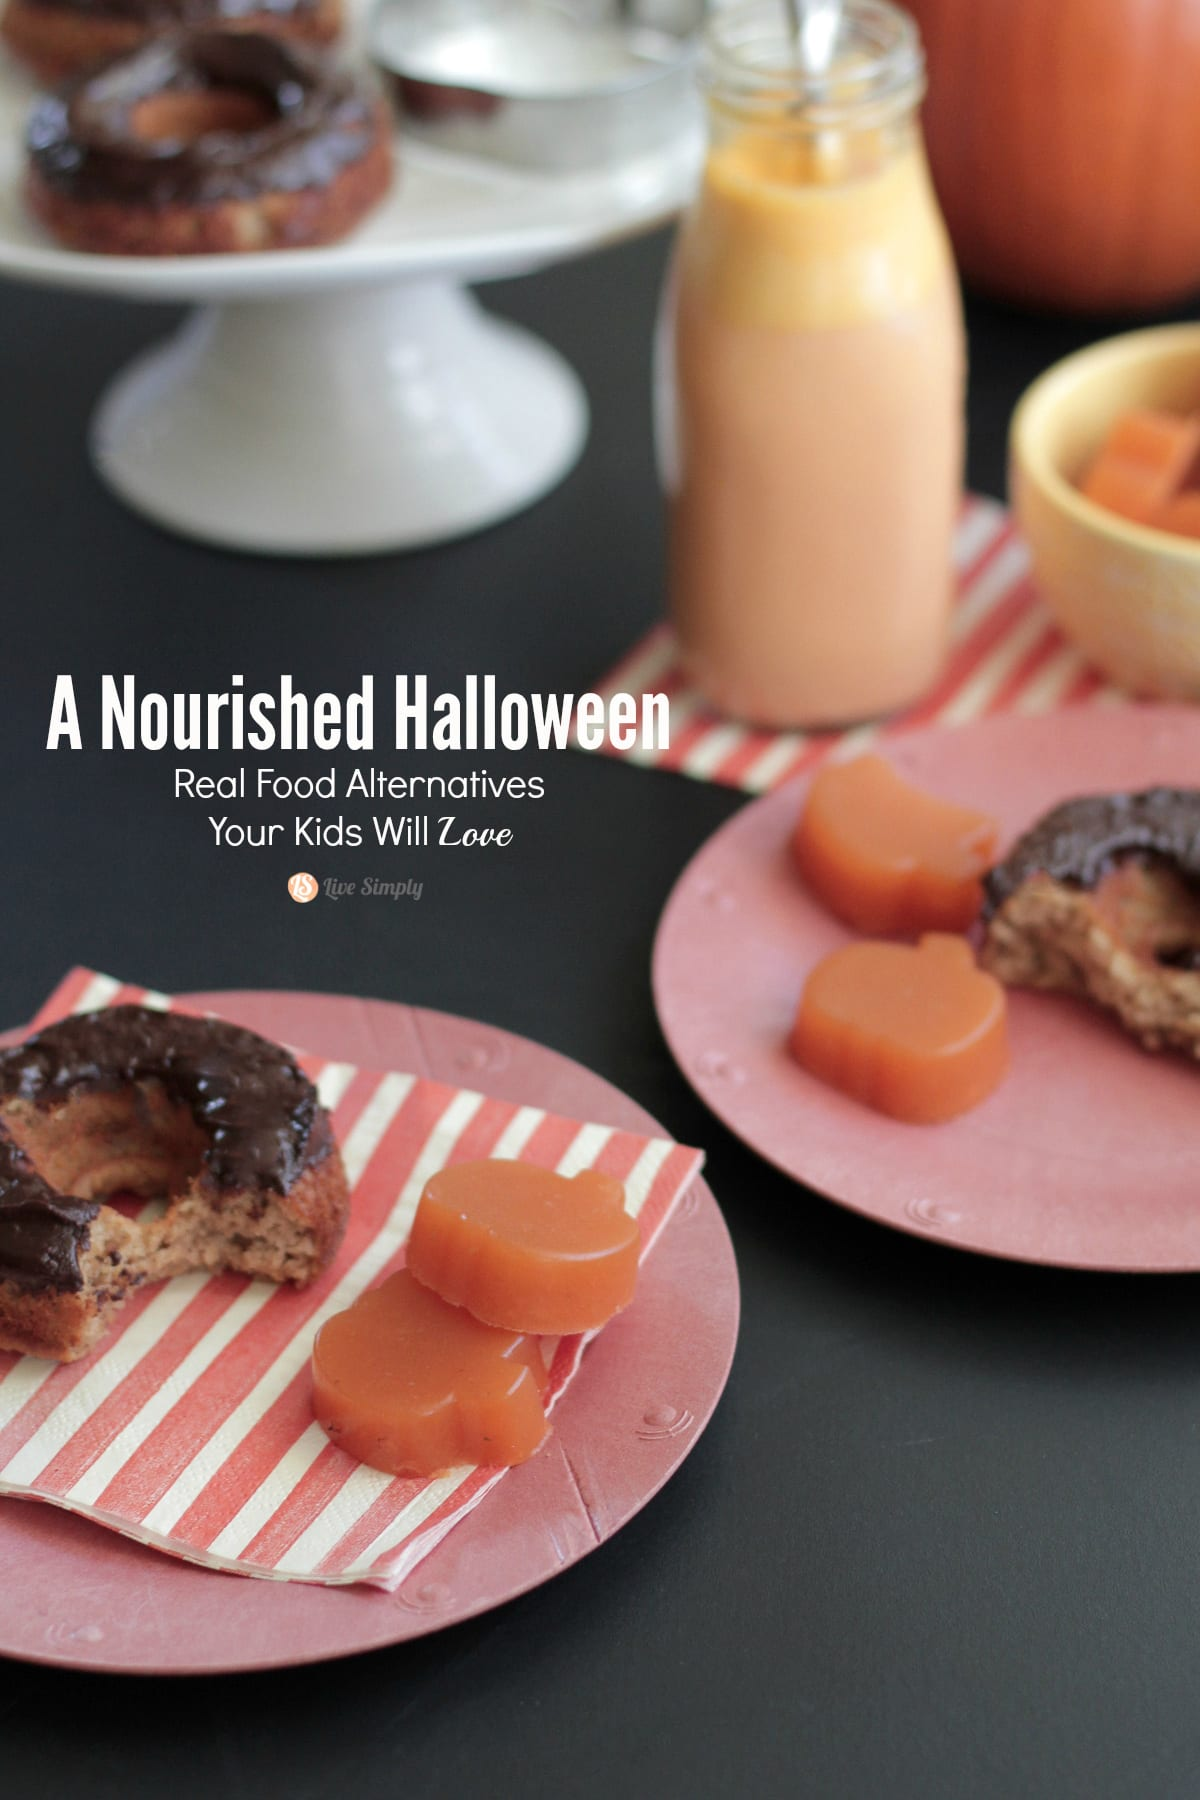 Real Food alternatives for halloween